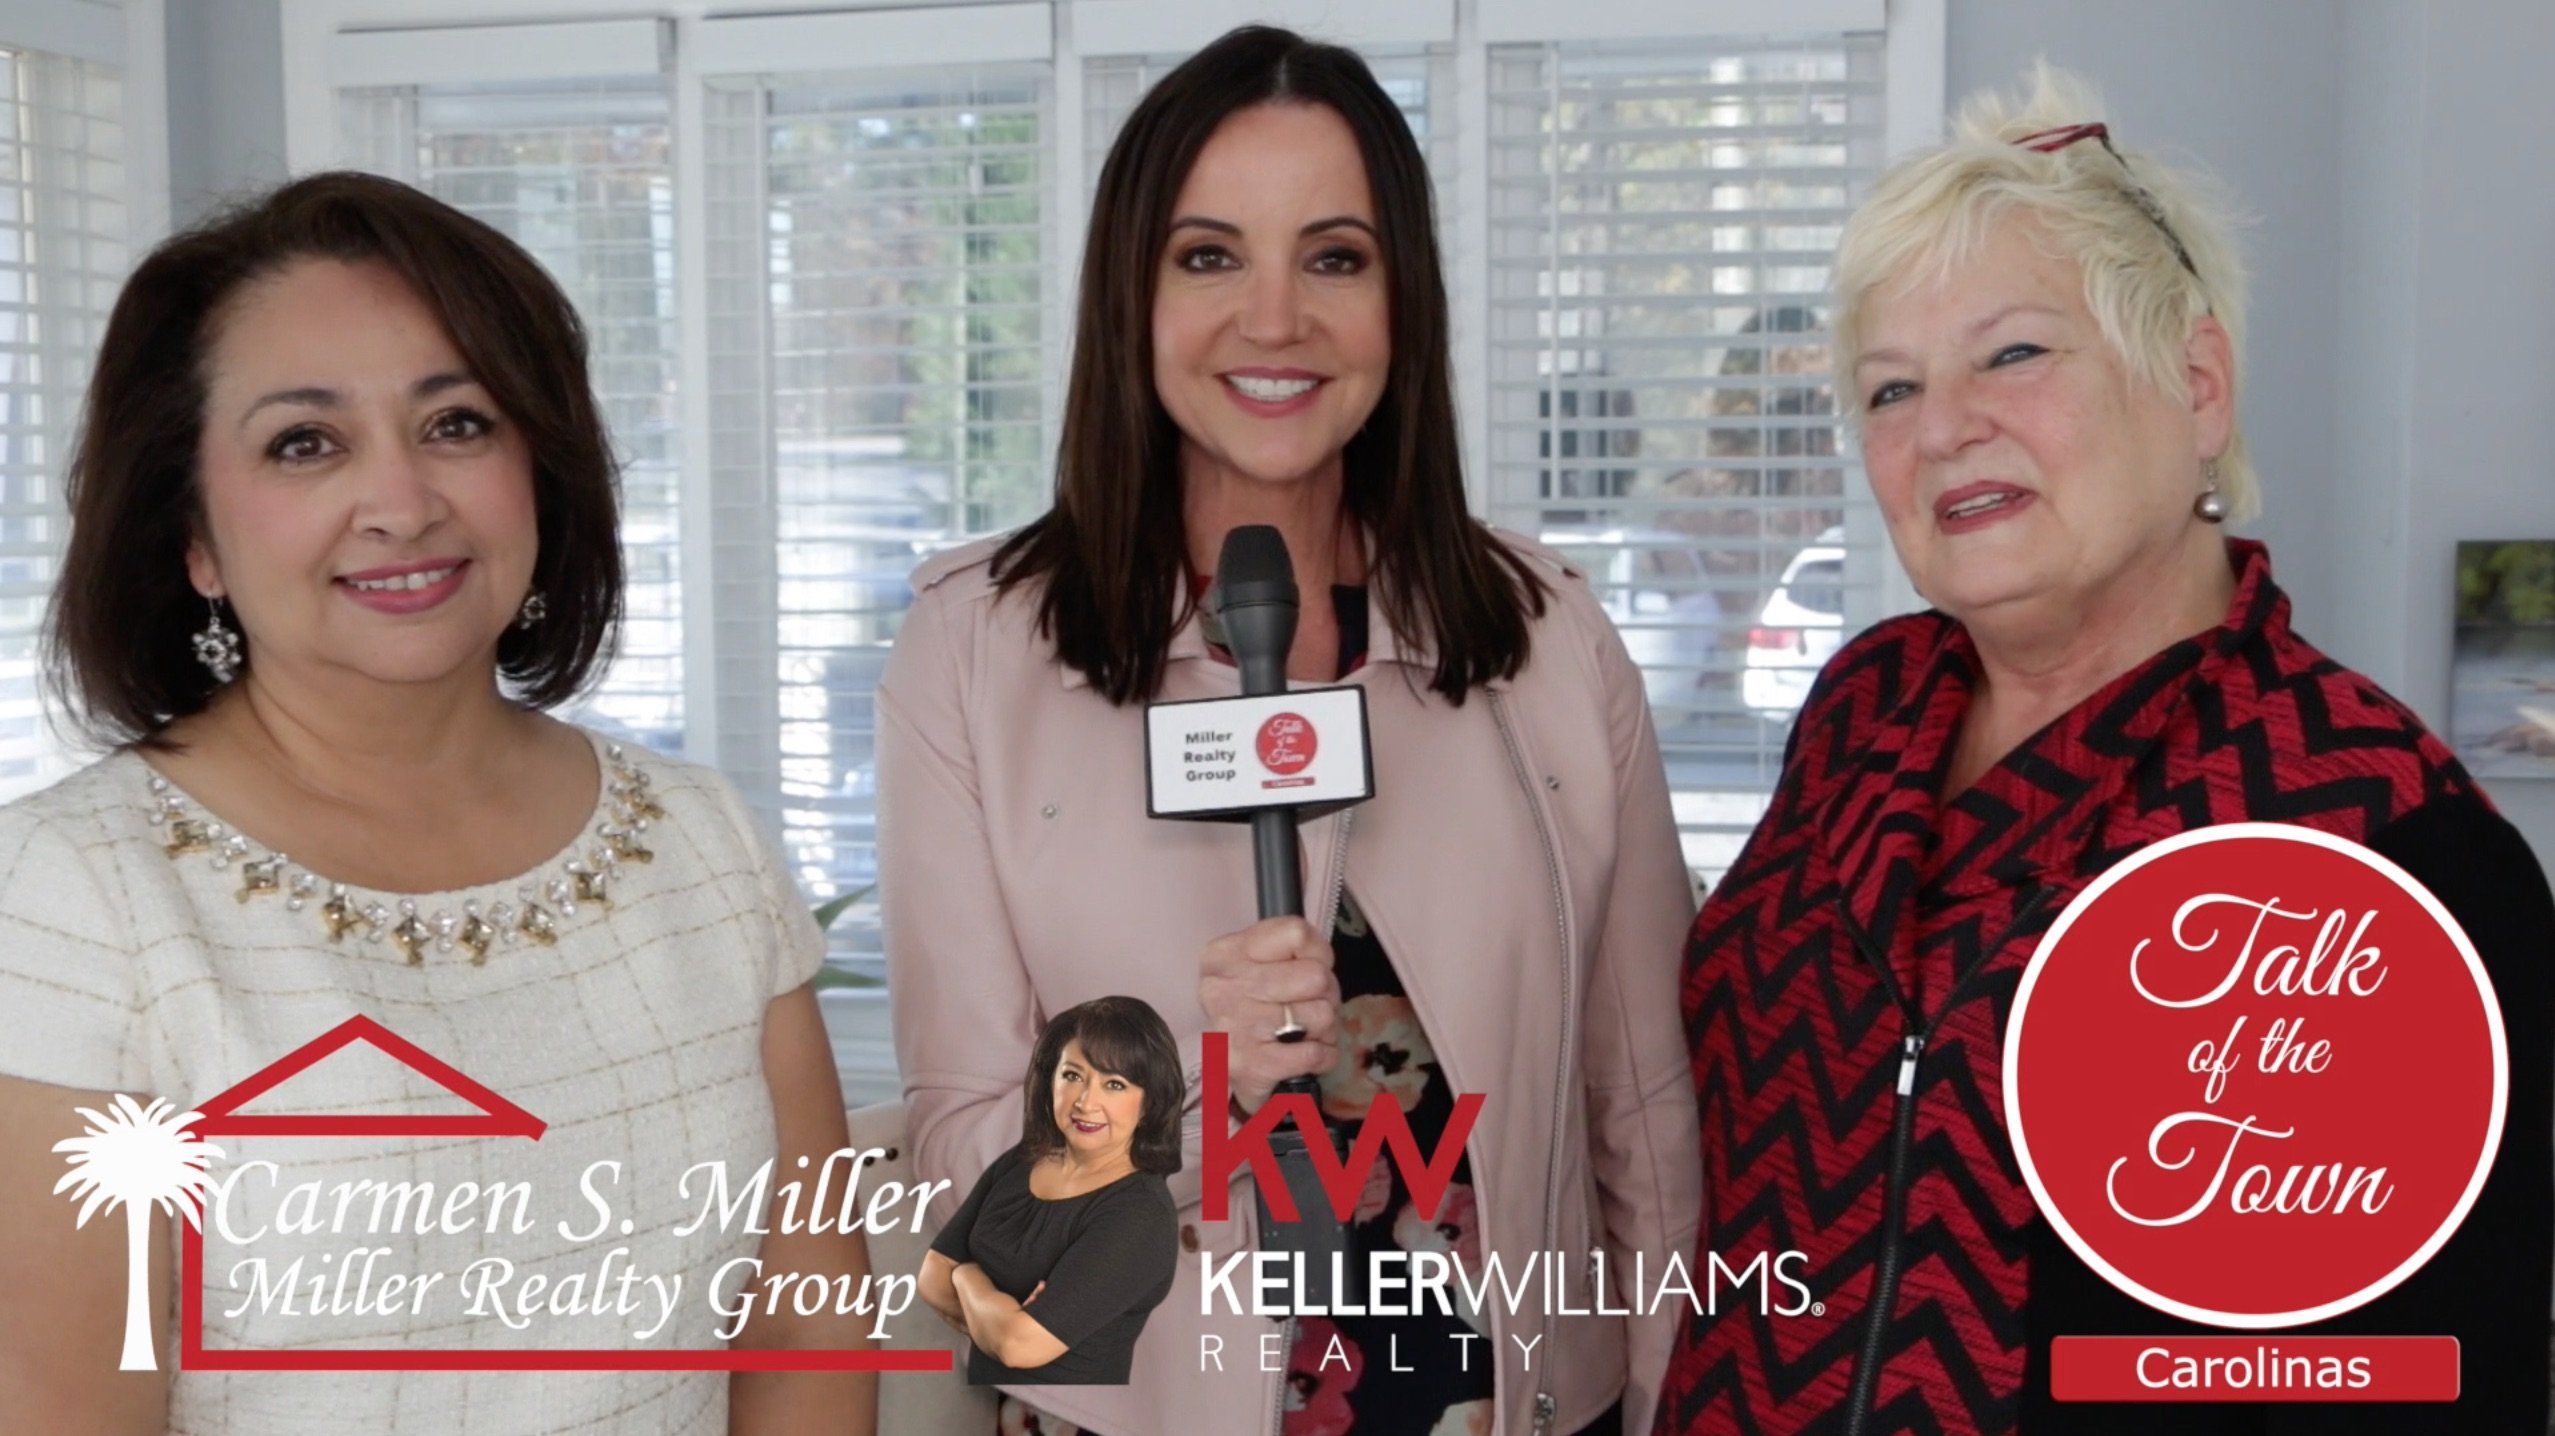 Miller Realty Group Announces Scholarship @ Foundation for Fort Mill Schools